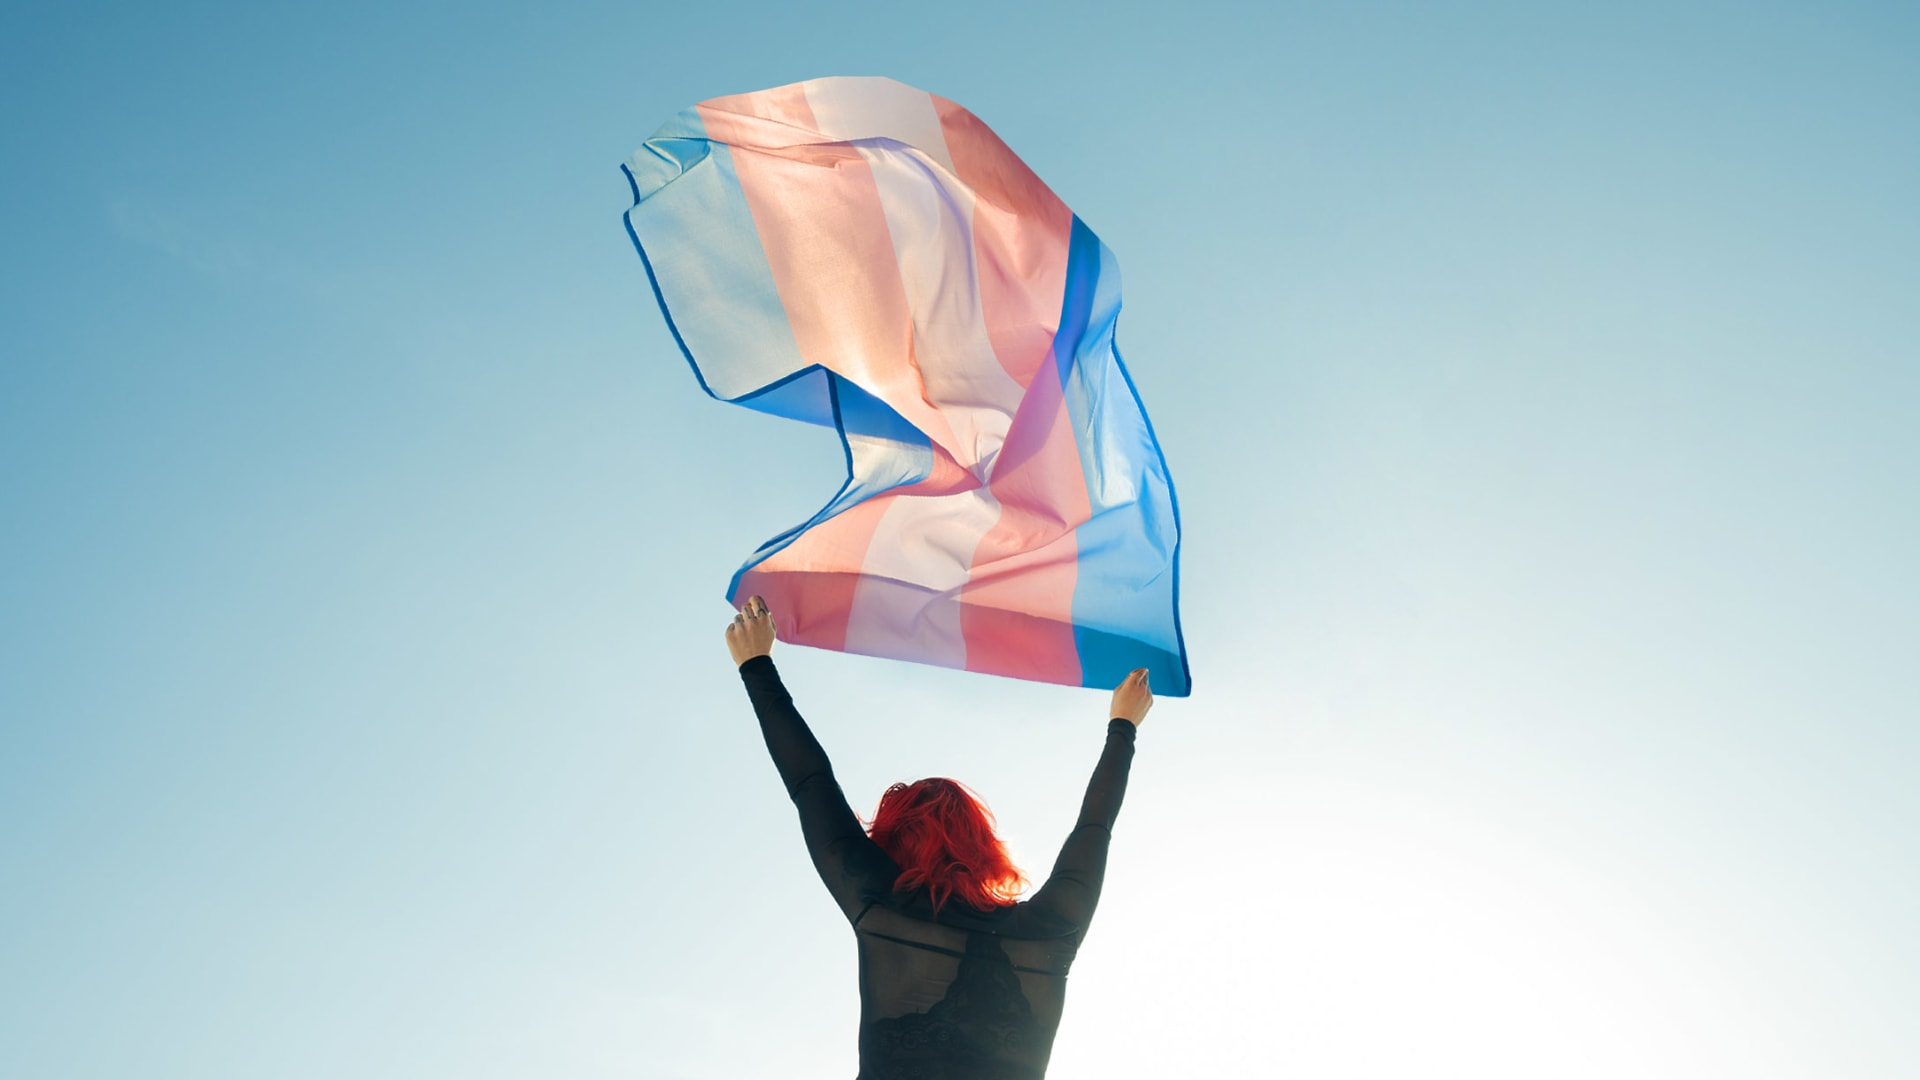 What Your Company Can Do to Build a Trans-Inclusive Workplace